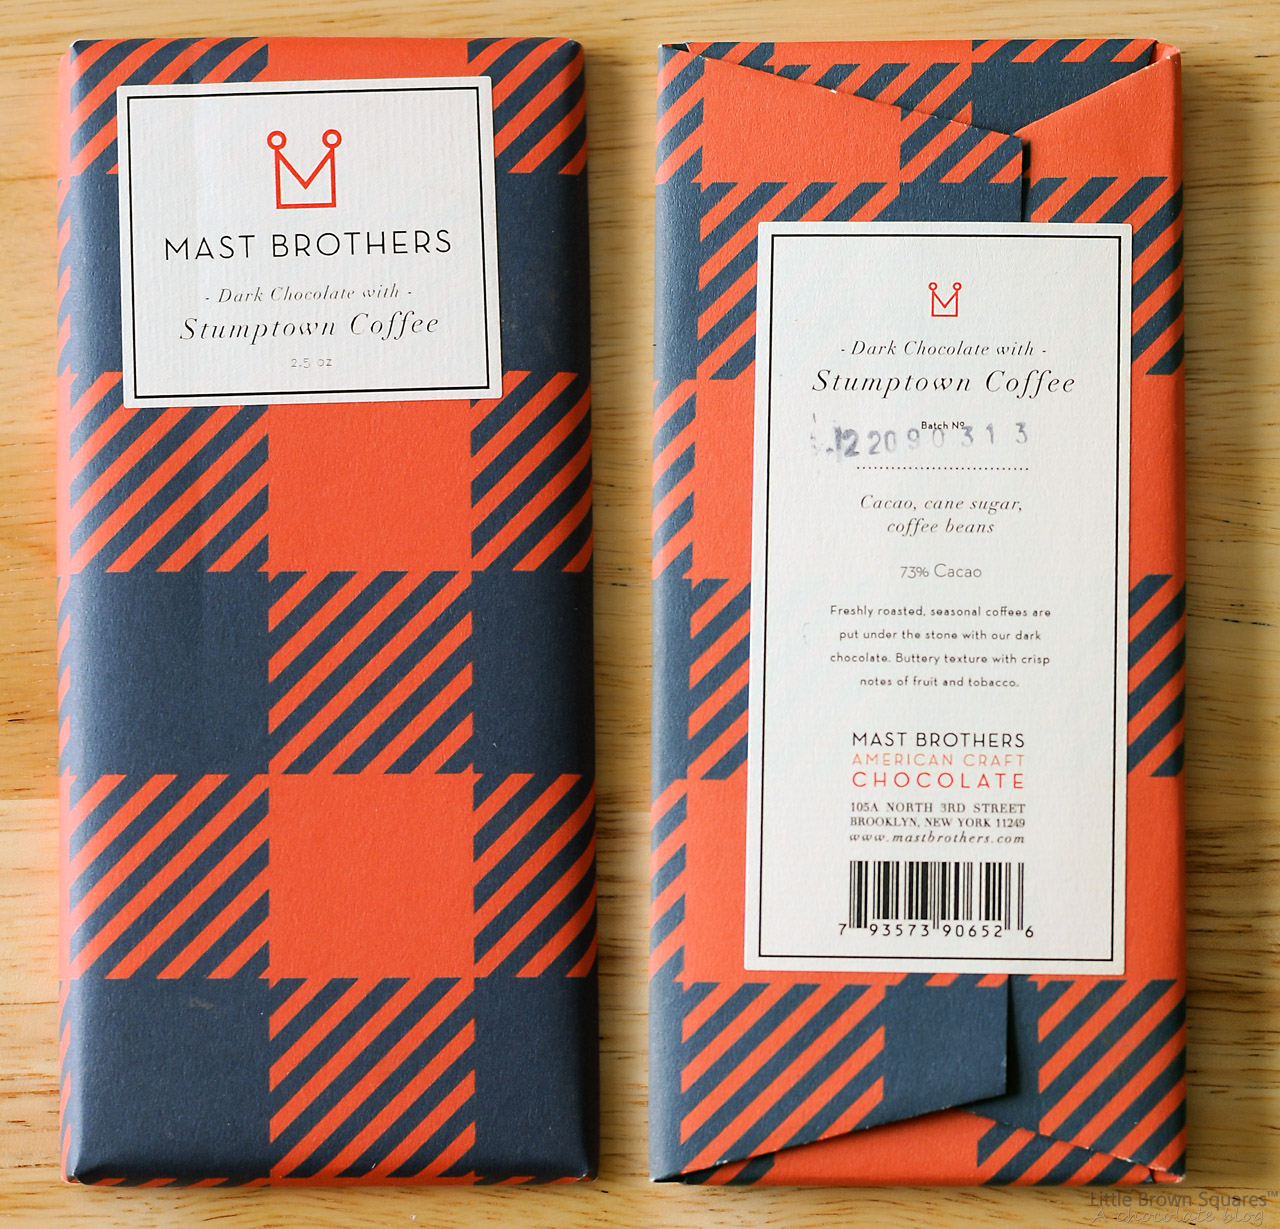 Mast Brothers Chocolate Bar - Pumpkin Chocolate Chip Cookies